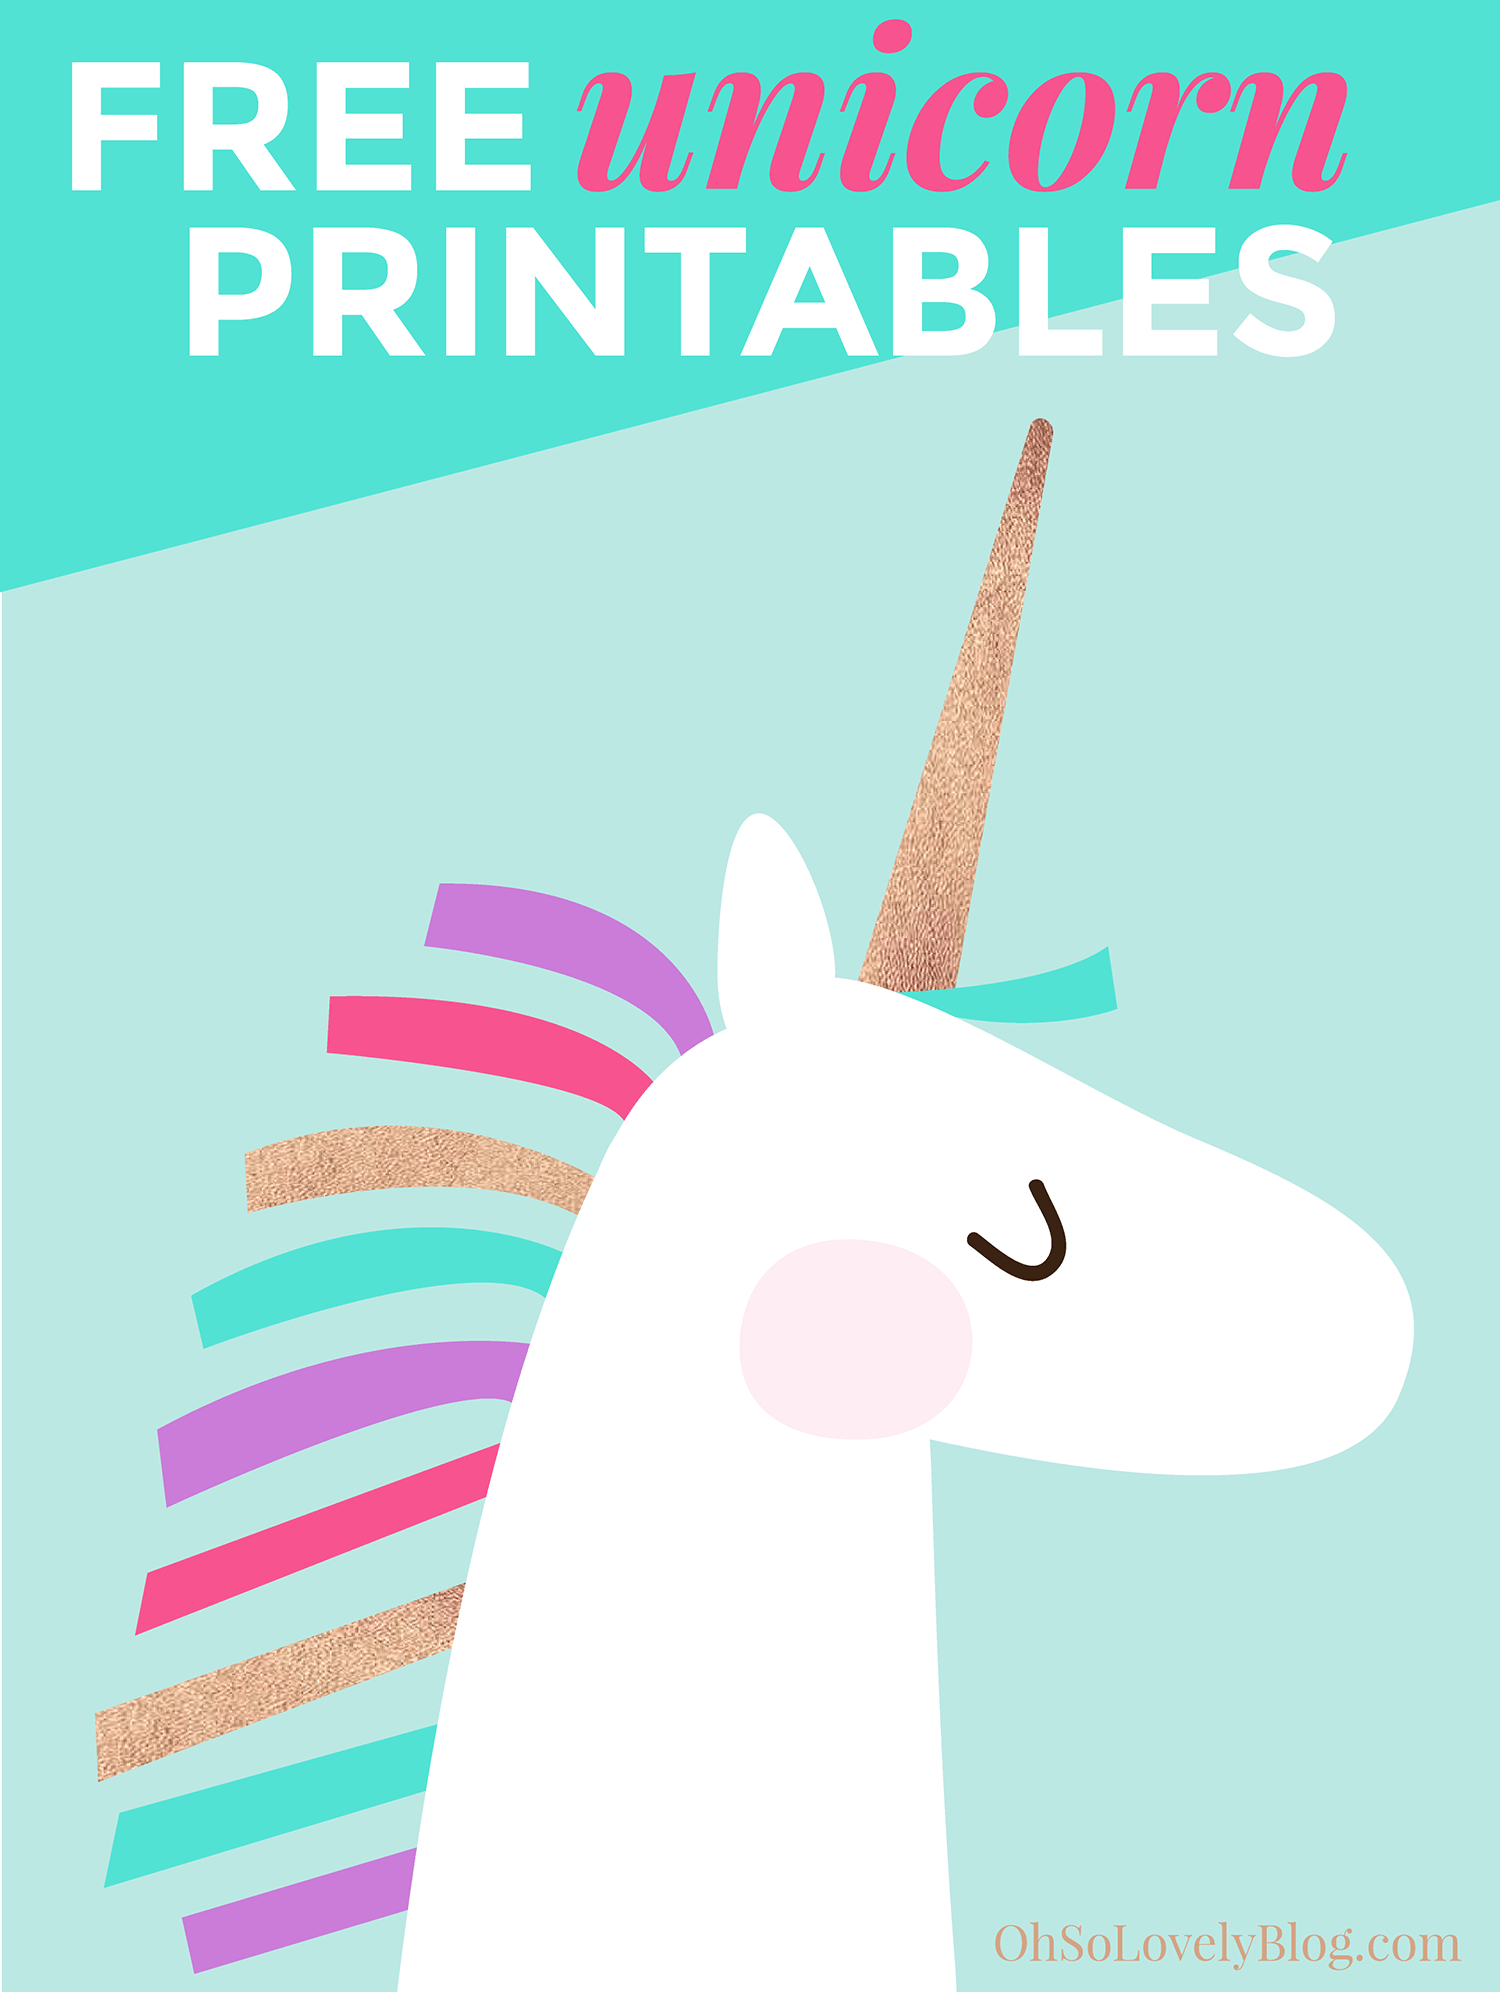 image regarding Free Printable Unicorn identify Do-it-yourself little one bed room advancements + a enjoyable unicorn printable